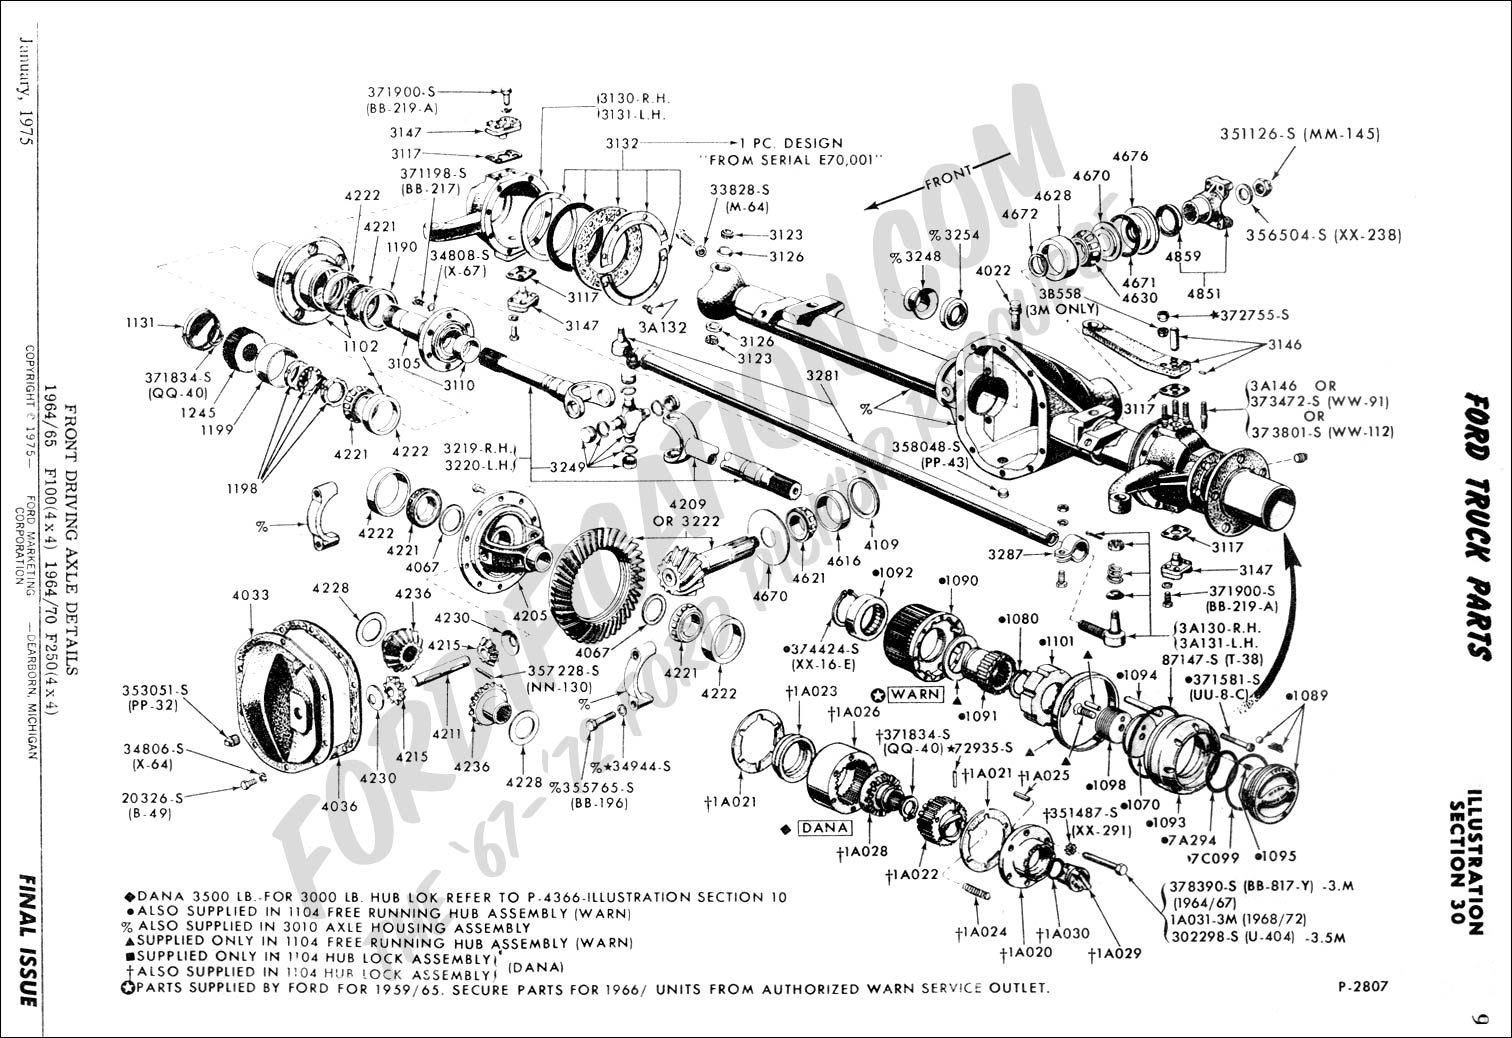 Ford truck technical drawings and schematics section a front ford truck technical drawings and schematics section a frontrear axle assemblies and suspensions pooptronica Images